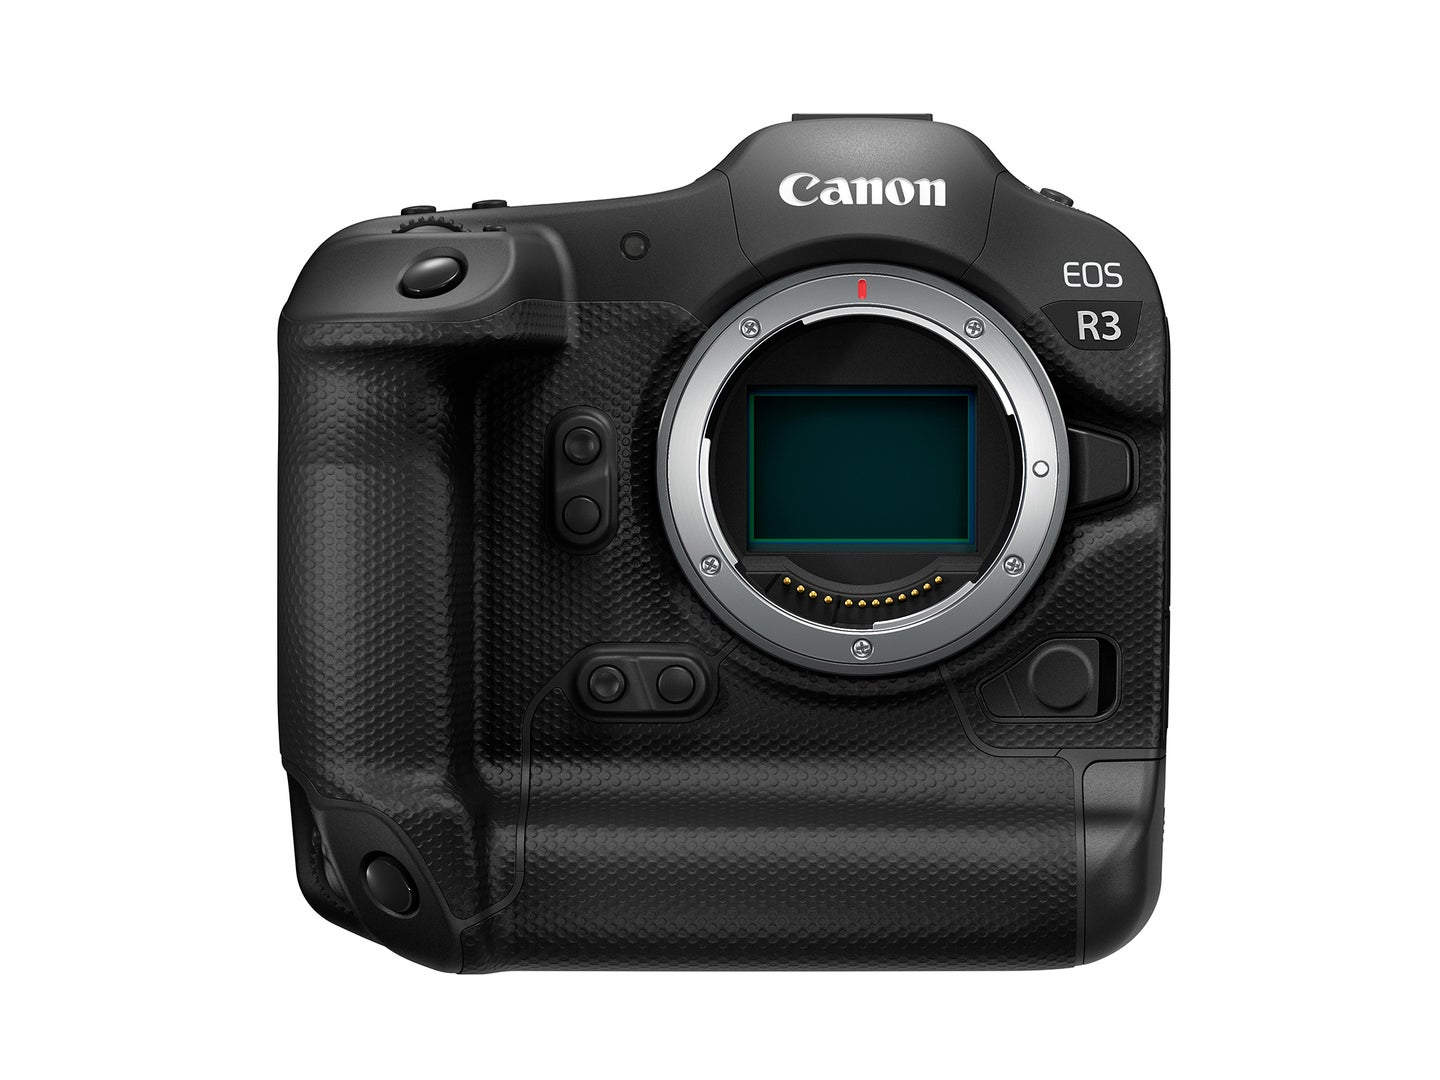 Canon EOS R3 with no lens on a white background